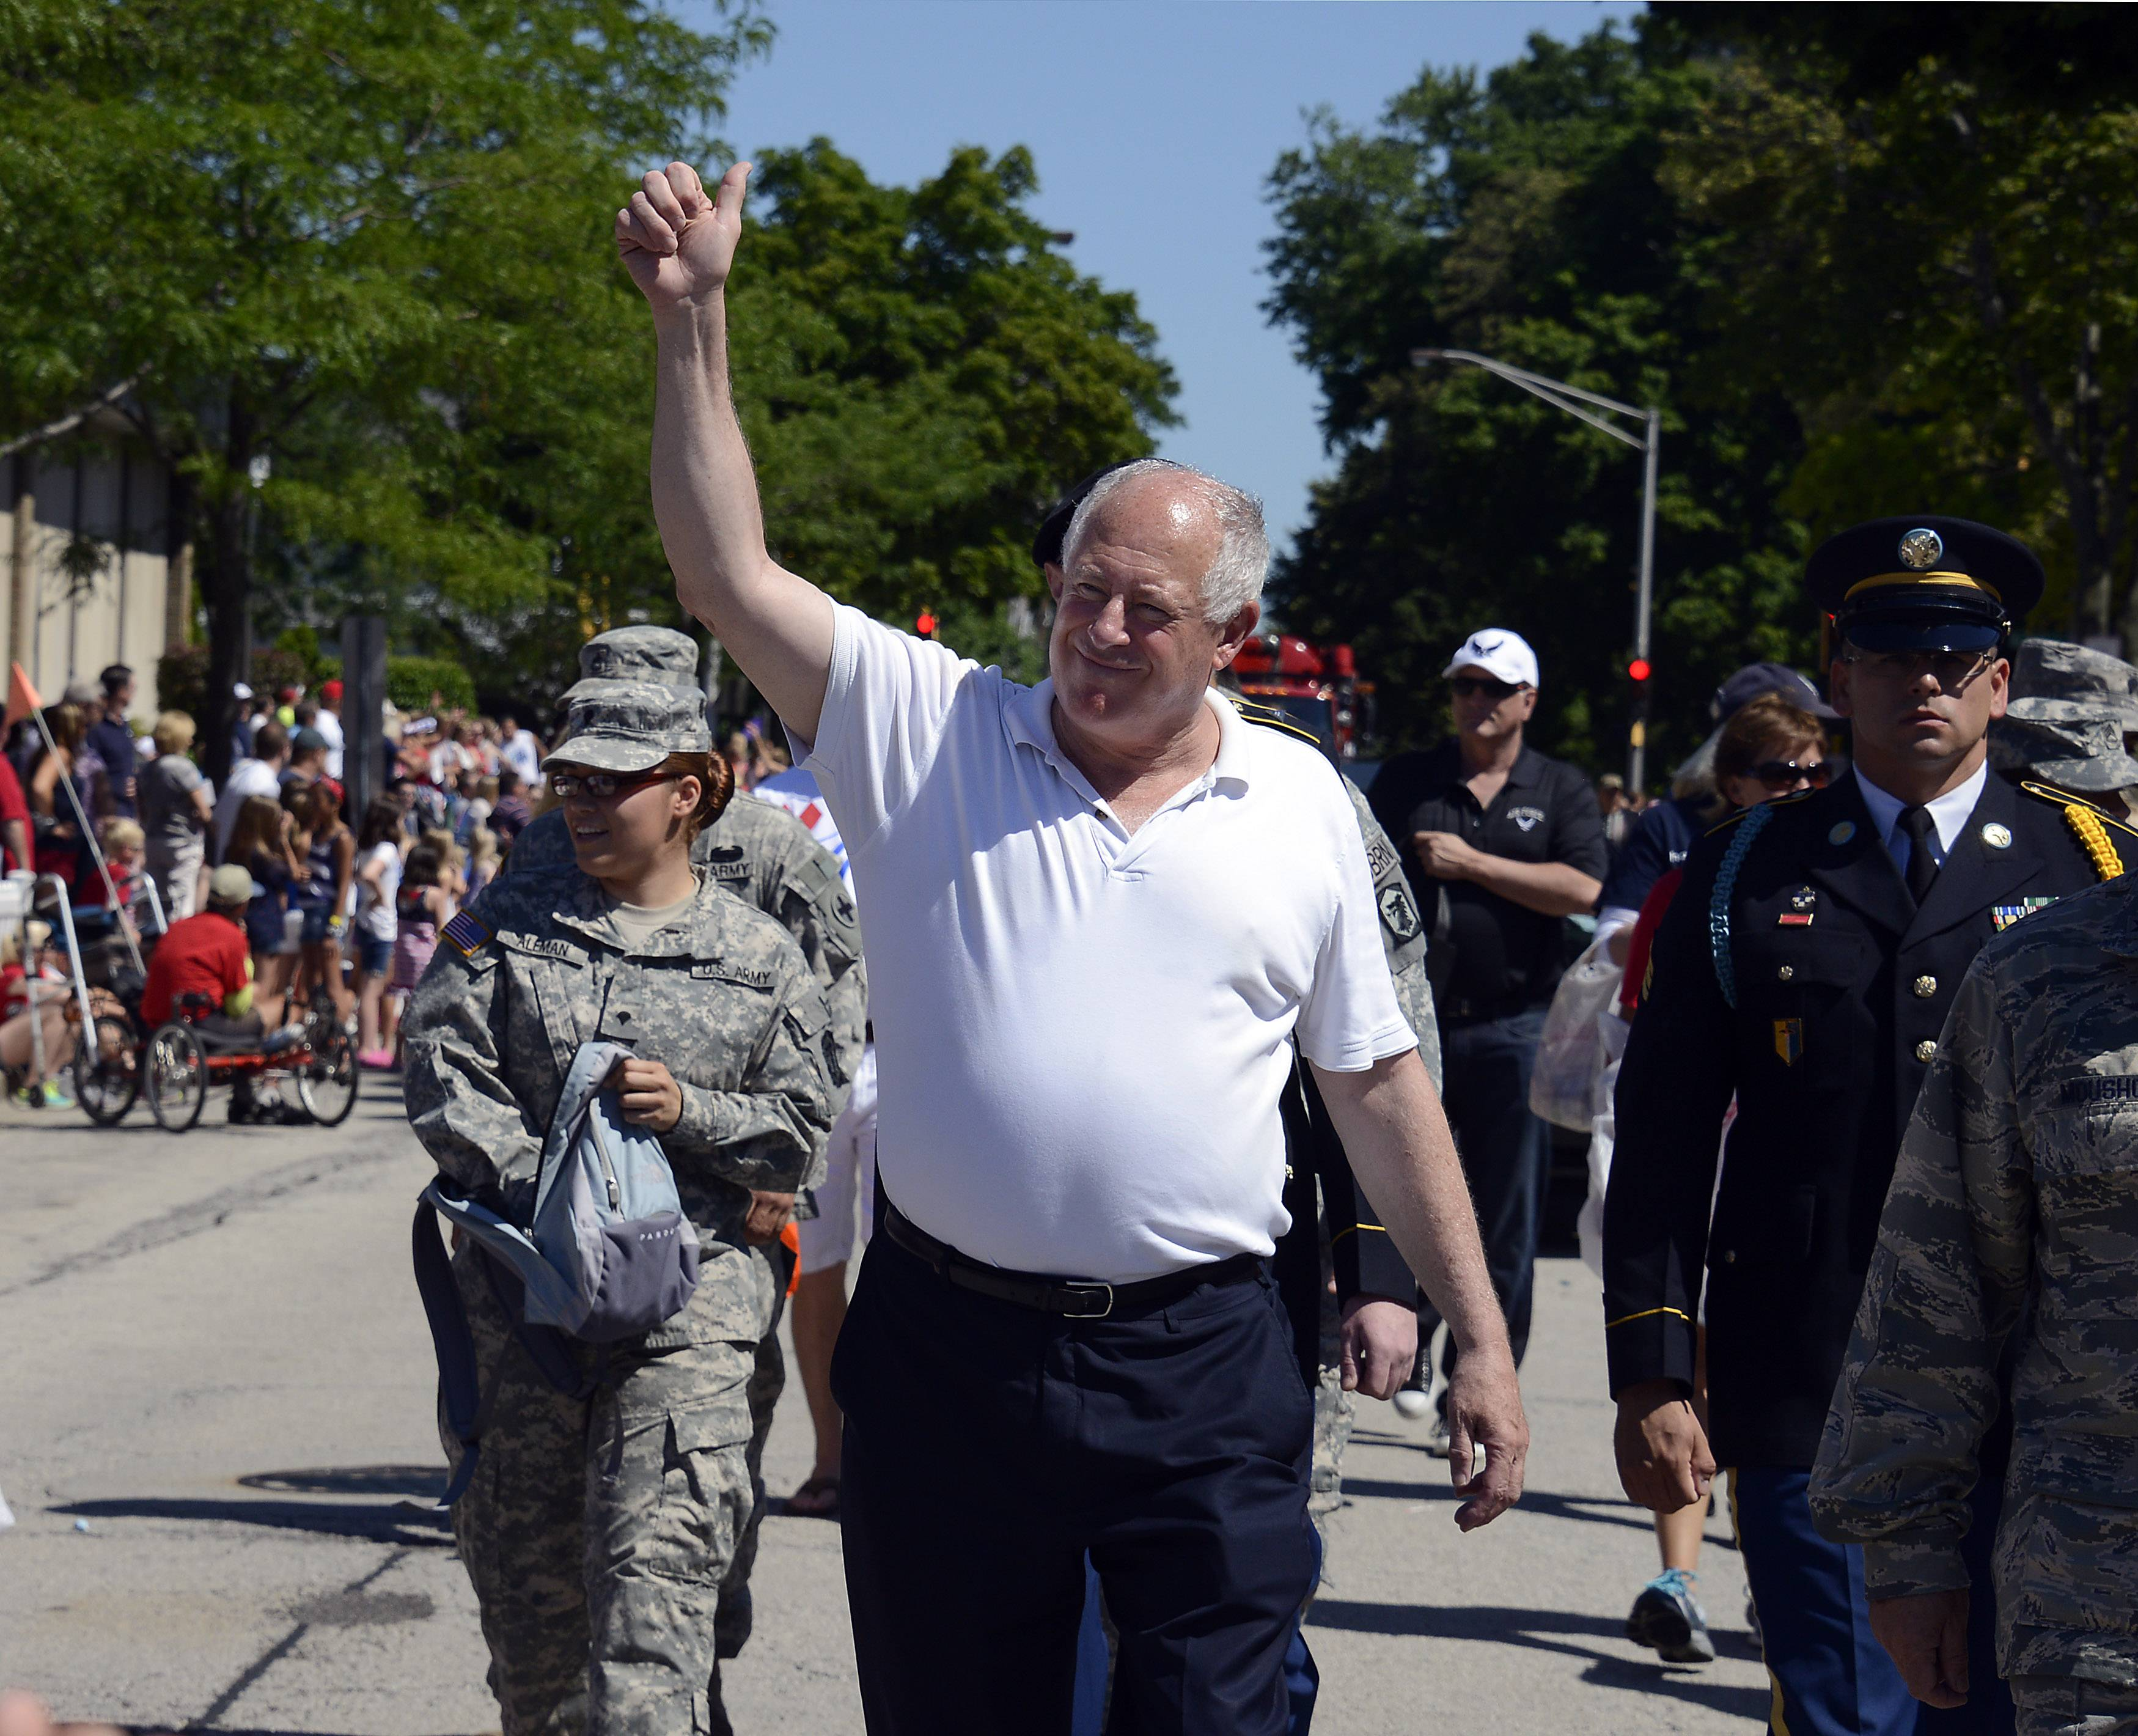 Illinois Governor Pat Quinn walks in the Arlington Heights 4th of July parade on Friday.